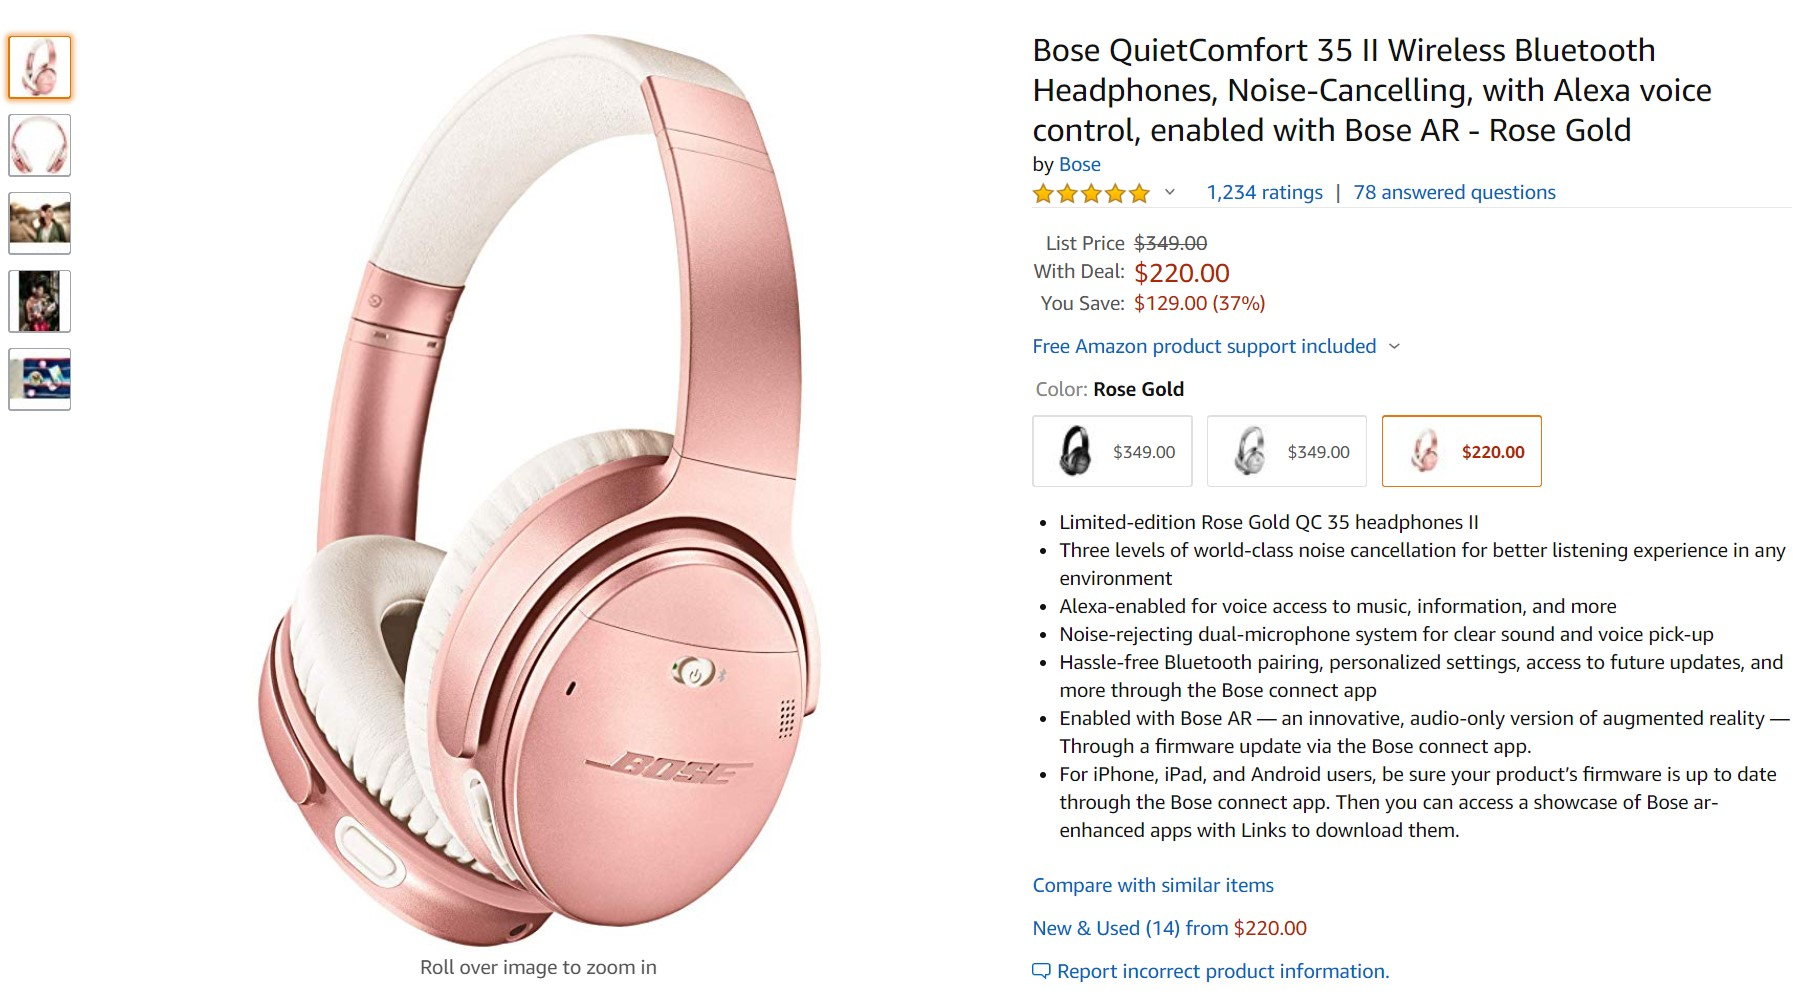 Deal Alert: Bose QC 35 II wireless headphones now selling at a record low price at Amazon 1